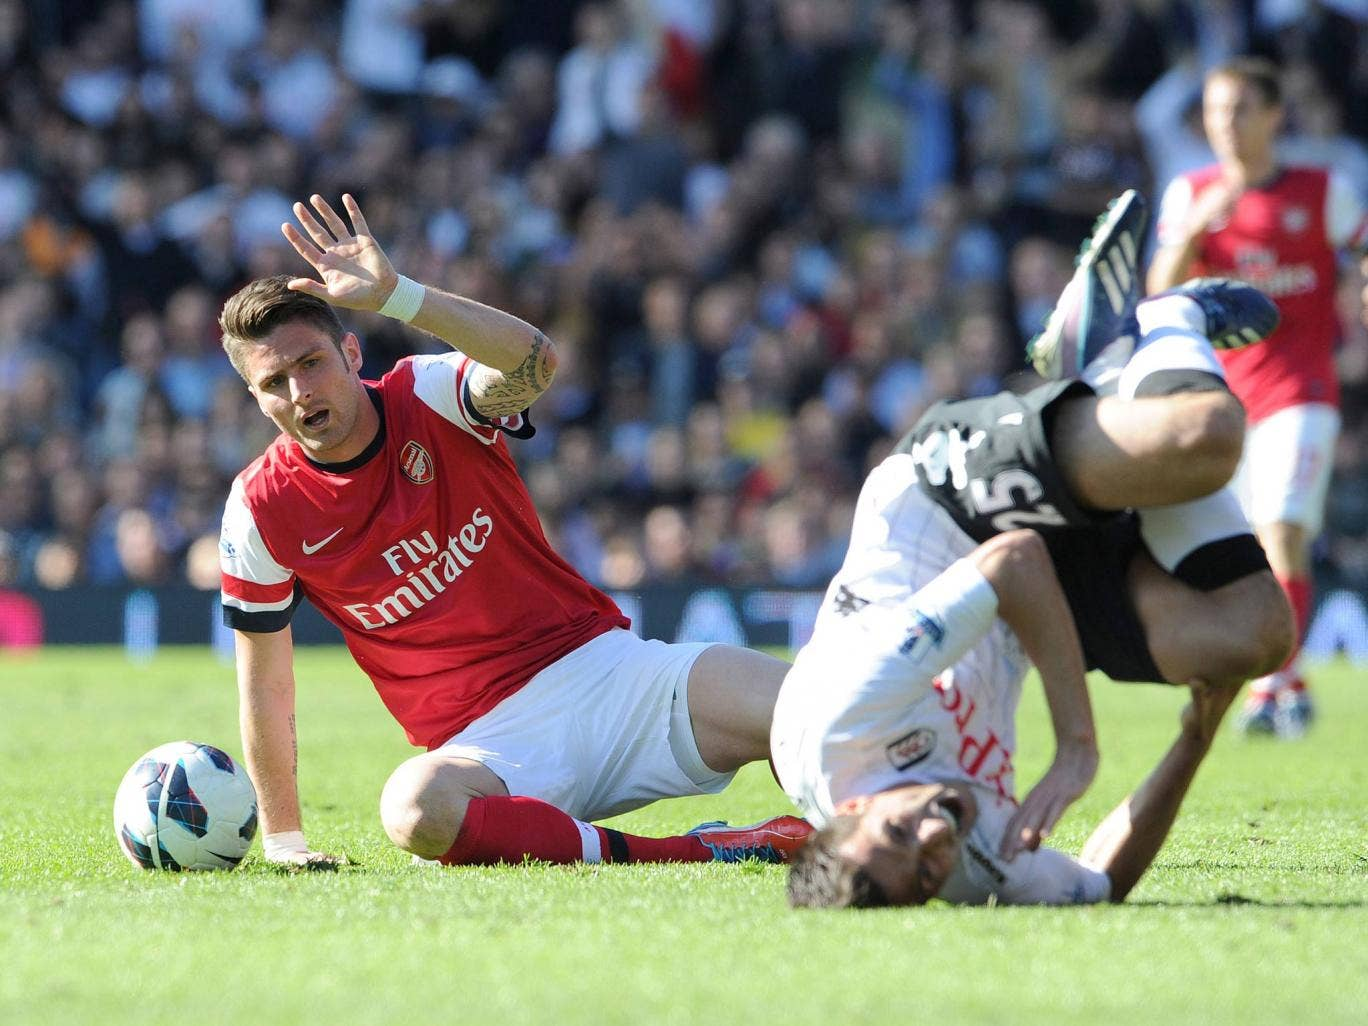 Arsenal striker Olivier Giroud saw red for a late challenge in the game against Fulham`